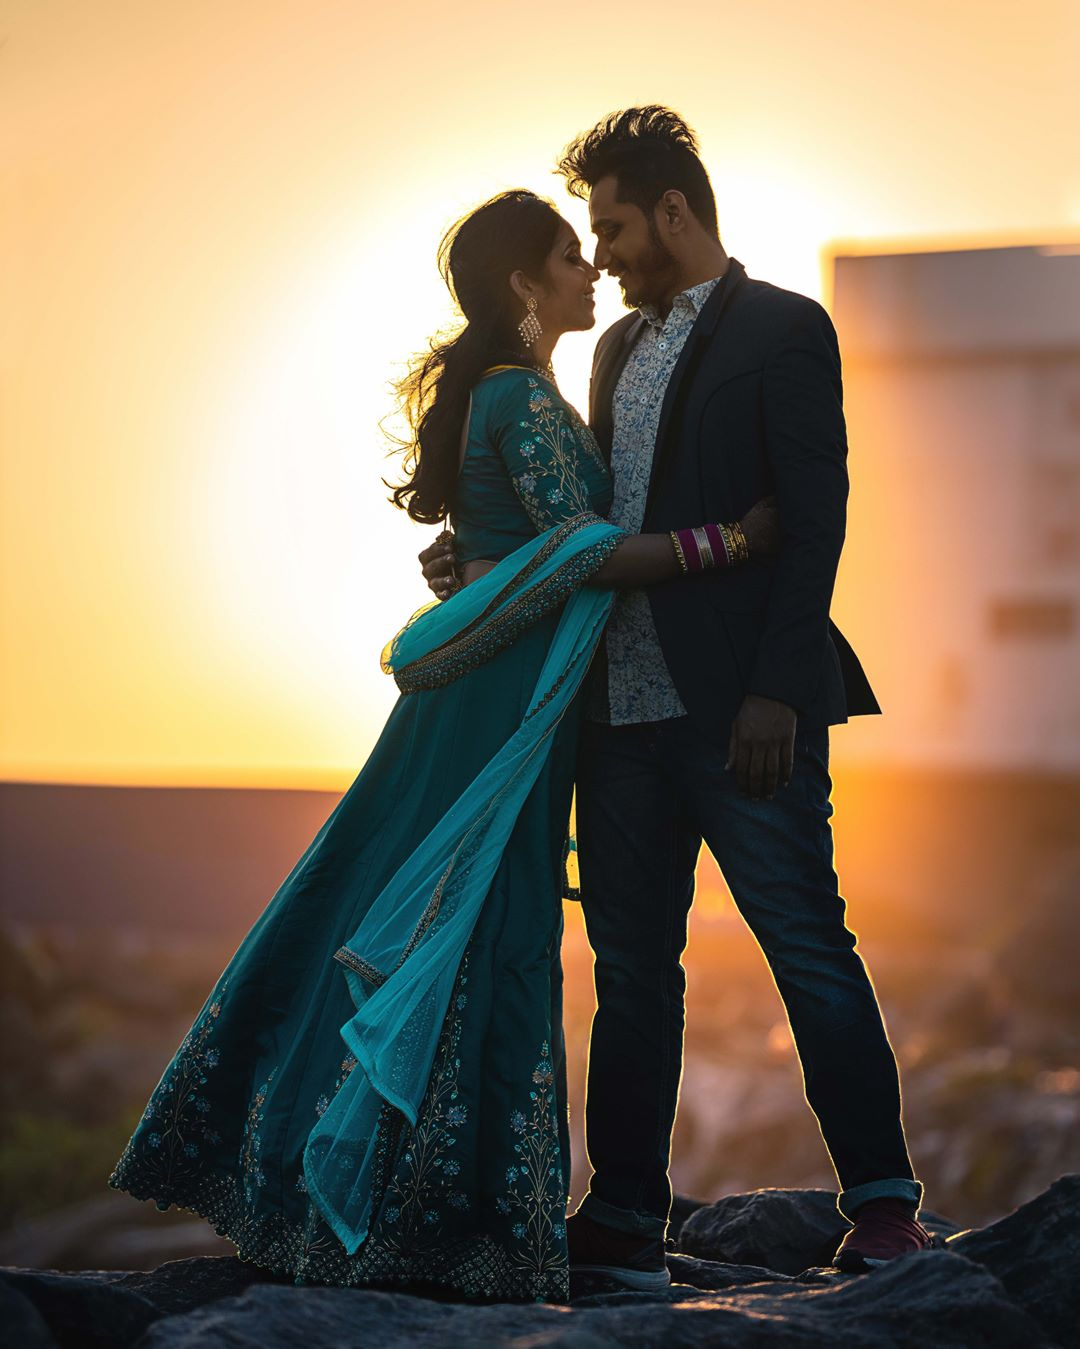 Stay golden: Pre-wedding Photoshoot for Indian Couples